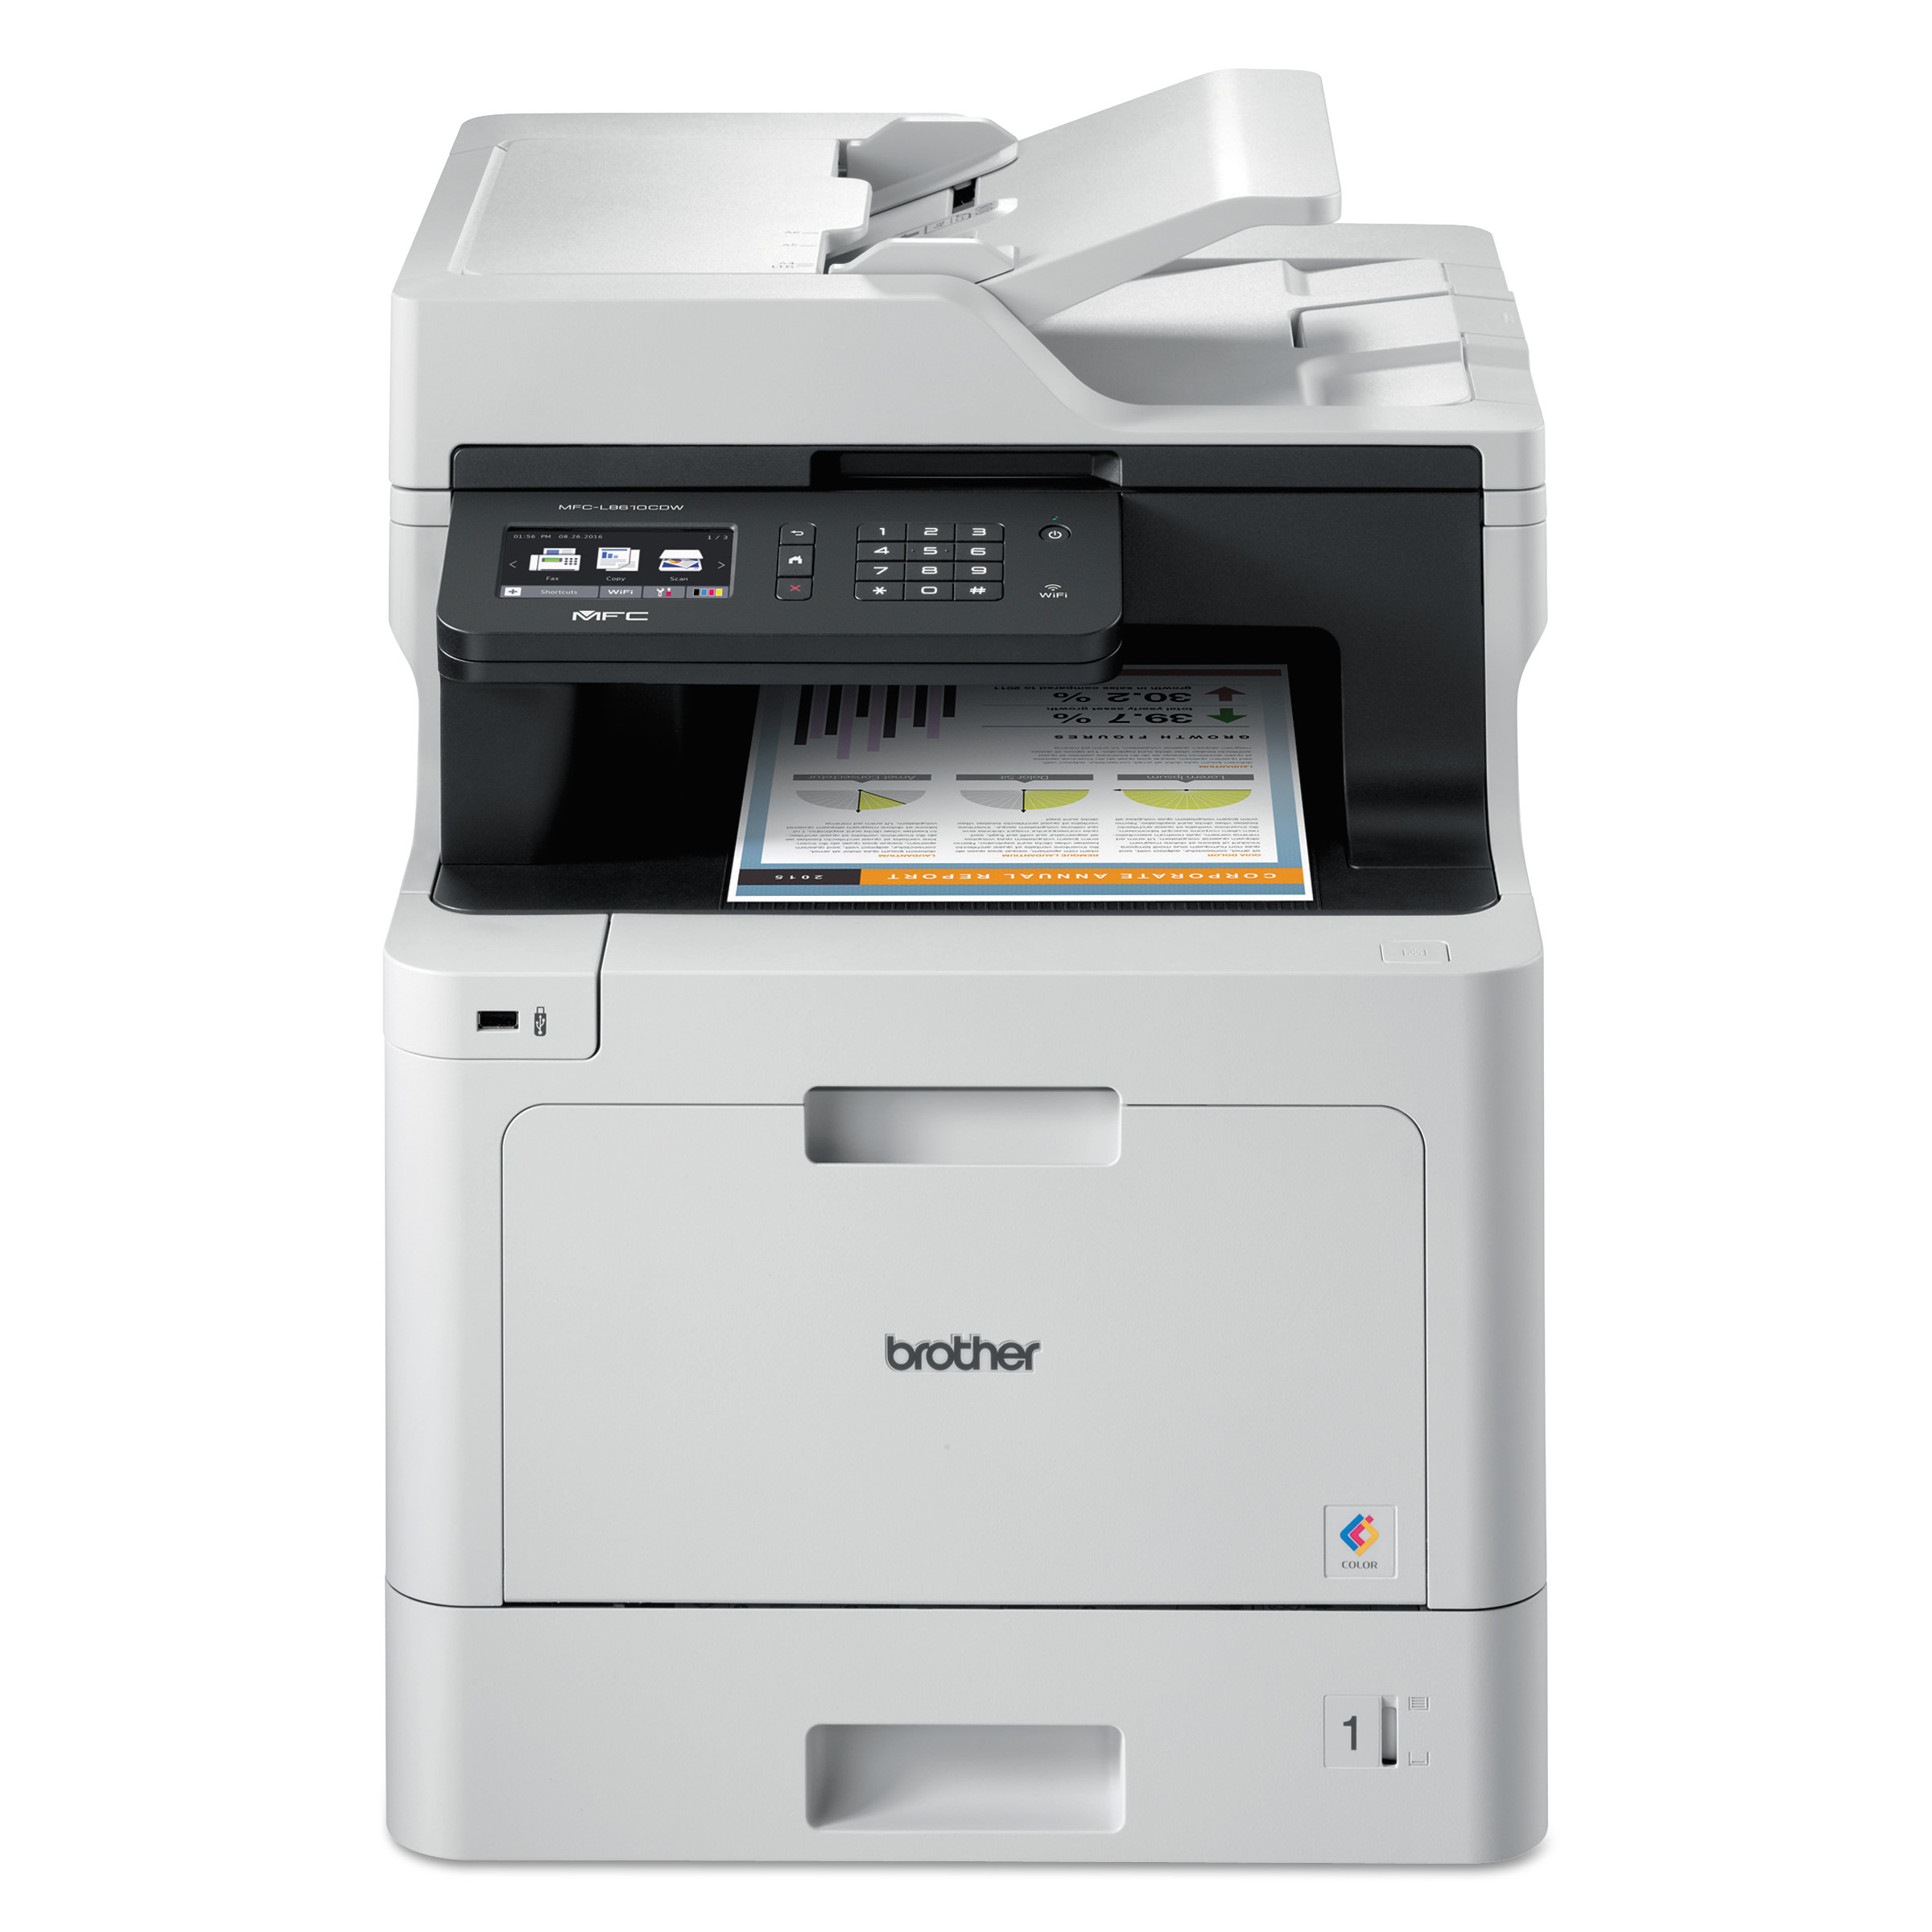 MFC-L8610CDW Business Color Laser All-in-One, Copy/Fax/Print/Scan